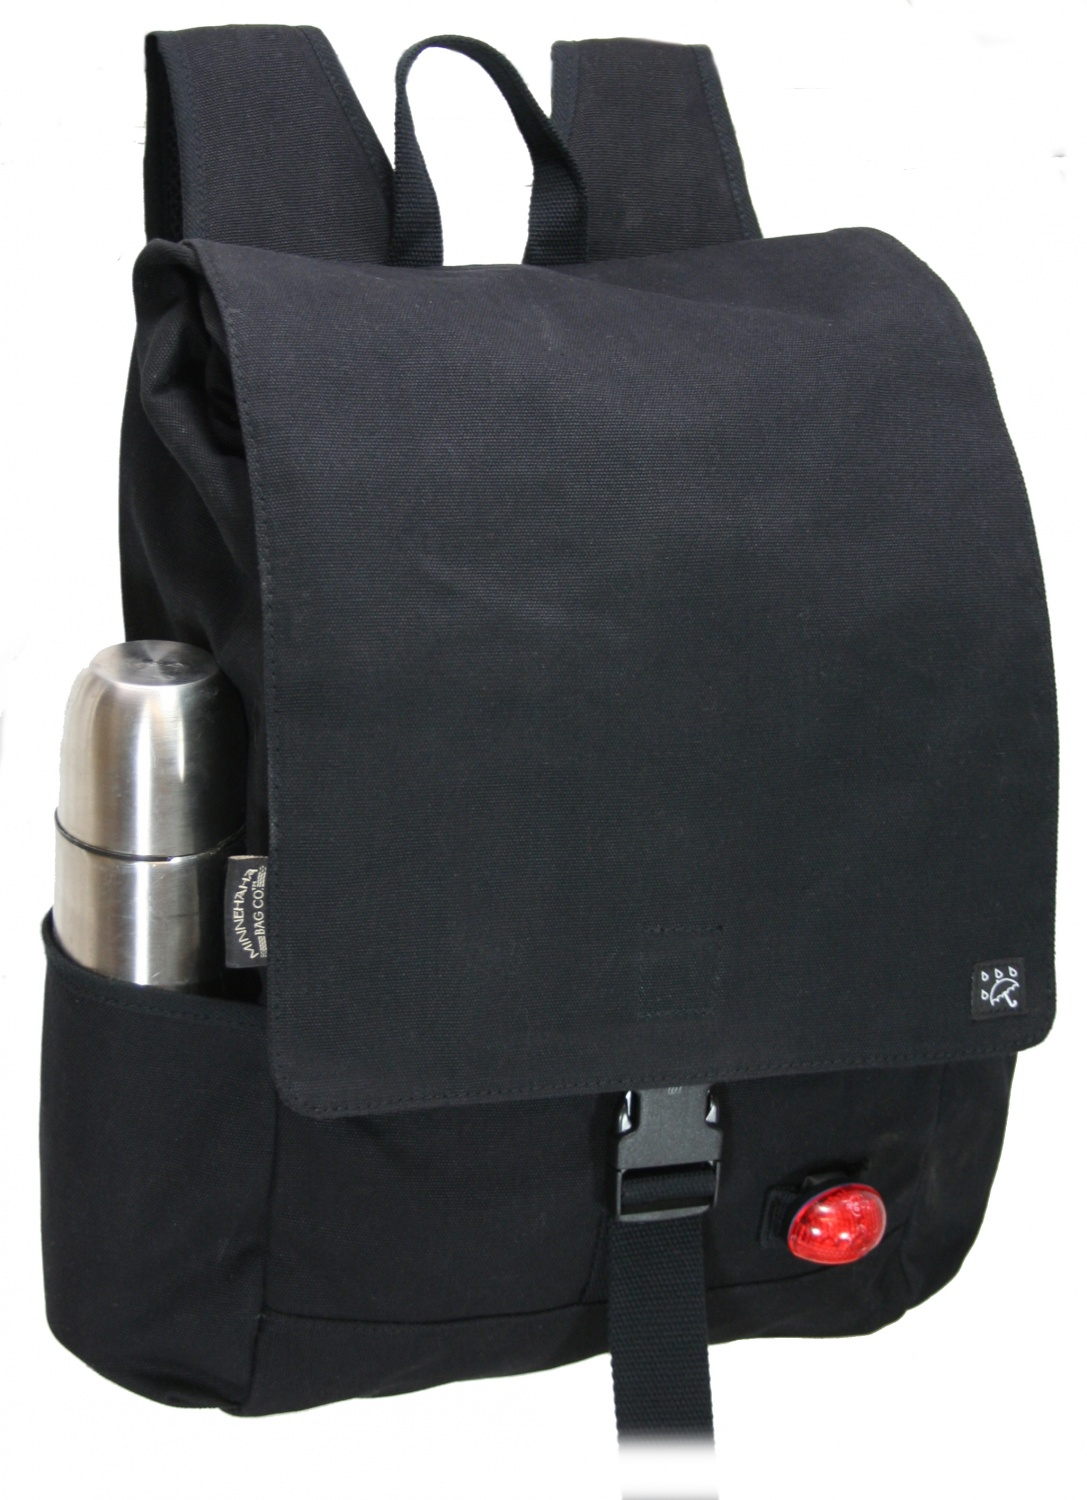 Waterproof Commuter Backpack edgBEaLi